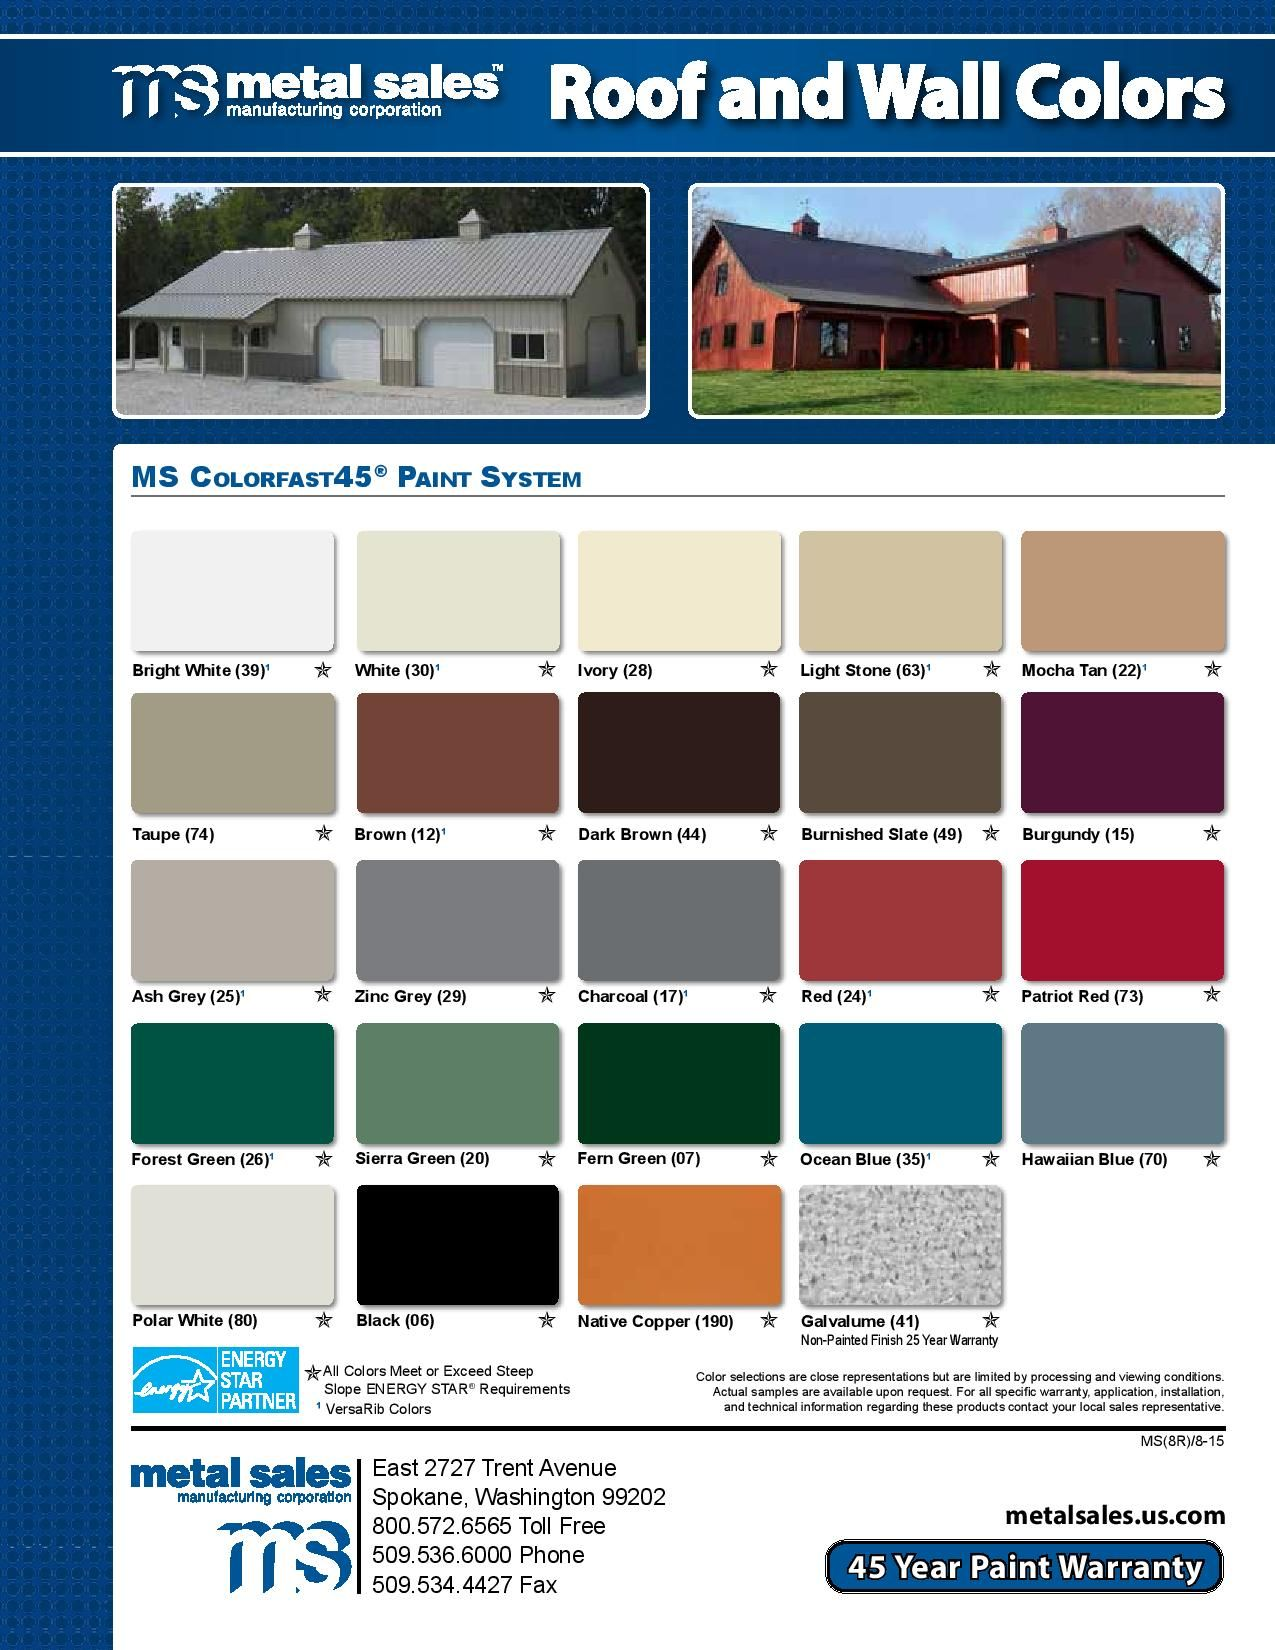 Metals Sales color chips for their metal roofing.